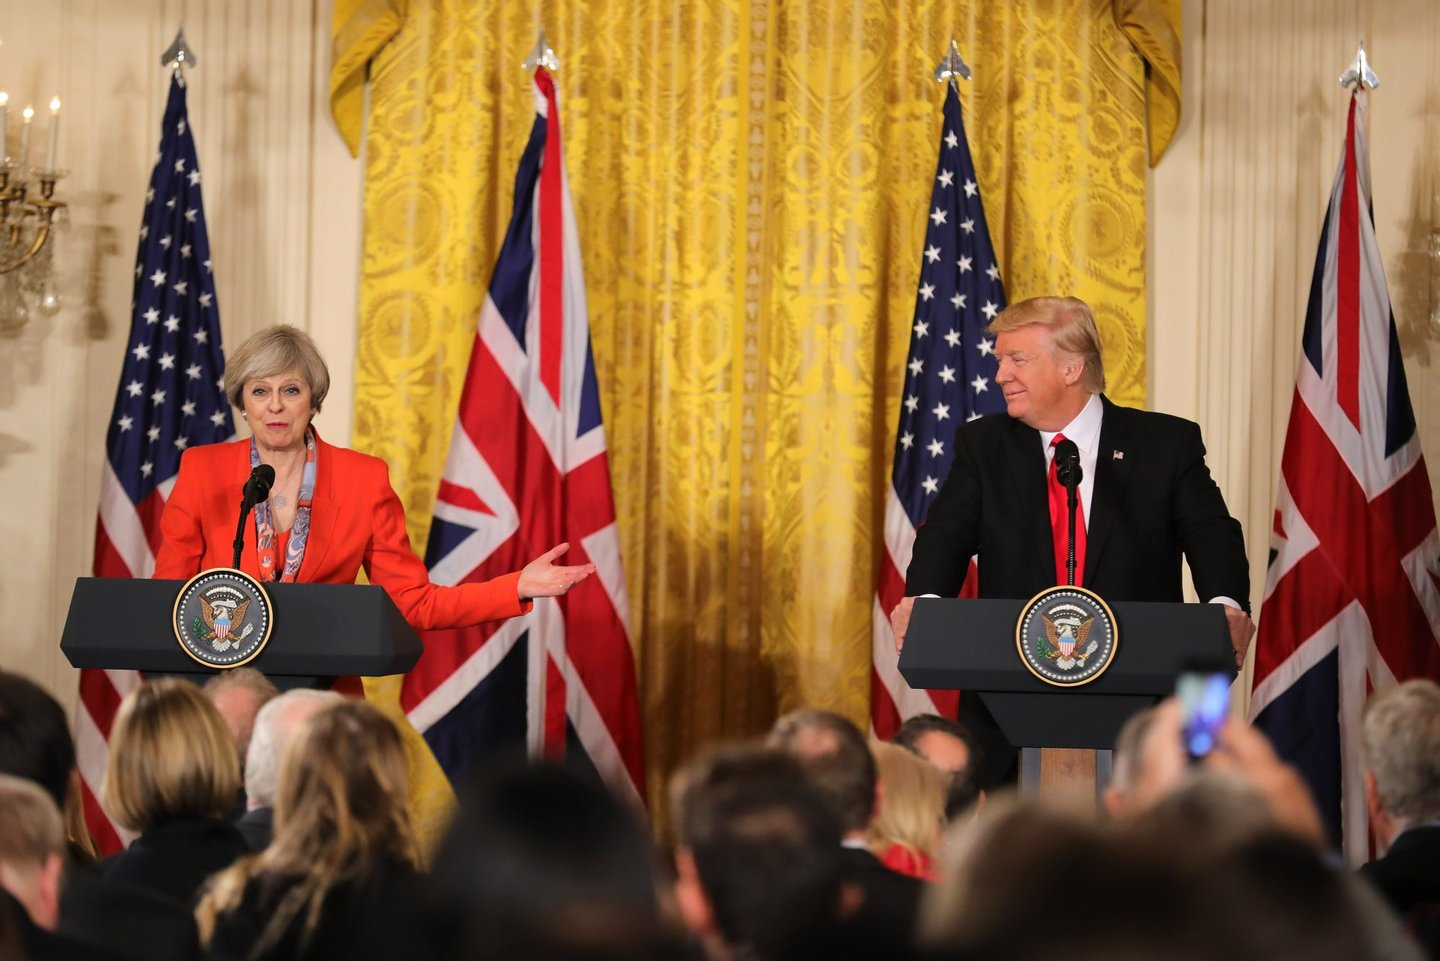 WASHINGTON, DC - JANUARY 27: British Prime Minister Theresa May speaks during a joint press conference with U.S. President Donald Trump in The East Room at The White House on January 27, 2017 in Washington, DC. British Prime Minister Theresa May is on a two-day visit to the United States and will be the first world leader to meet with President Donald Trump.  (Photo by Christopher Furlong/Getty Images)